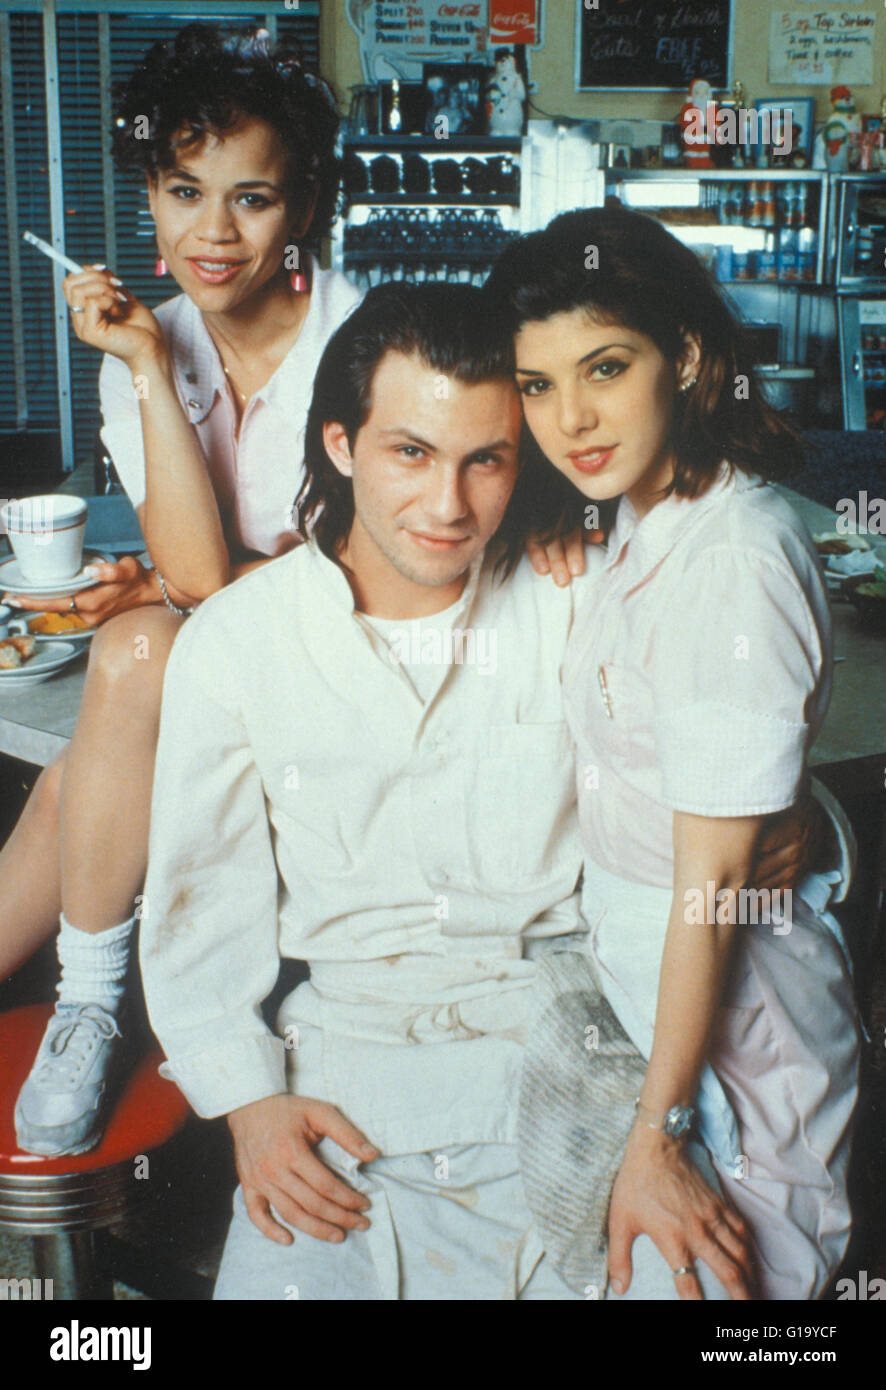 Real Love / Christian Slater / Marisa Tomei - Stock Image